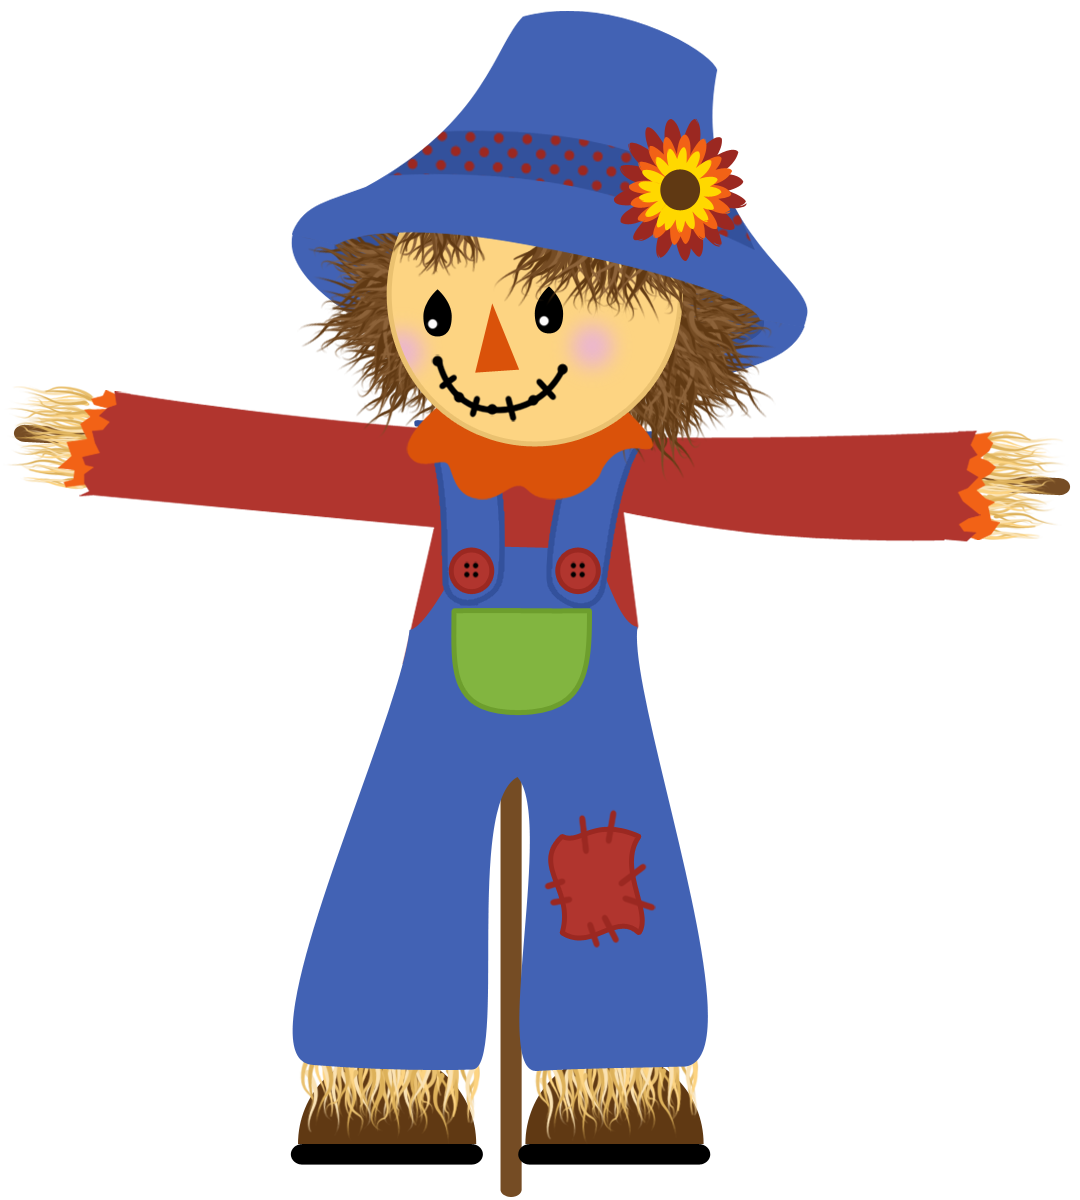 niBGEEb9T additionally  in addition pumpkin patch colouring page also color the apple tree coloring page also 14794499058 025a33c81d additionally 4ncEr9ATA together with  besides  likewise  further  together with Acorn Maze. on fall scarecrow t coloring pages